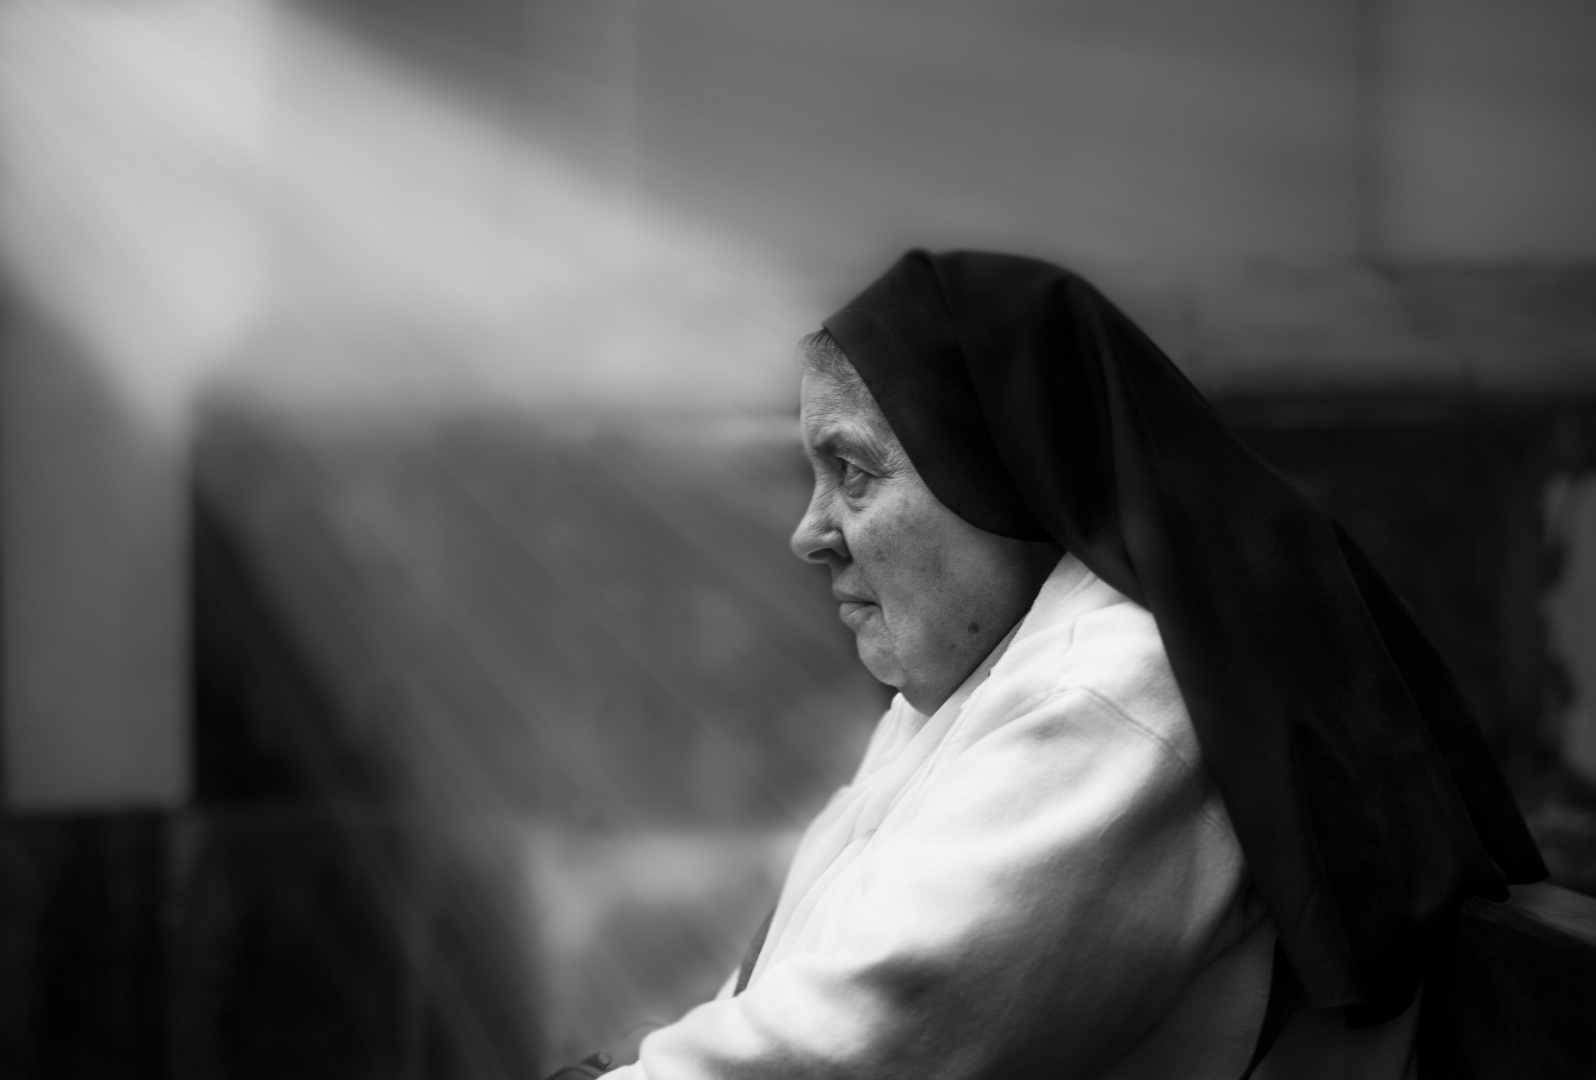 DIALOGUES WITH GOD FOR A NUN